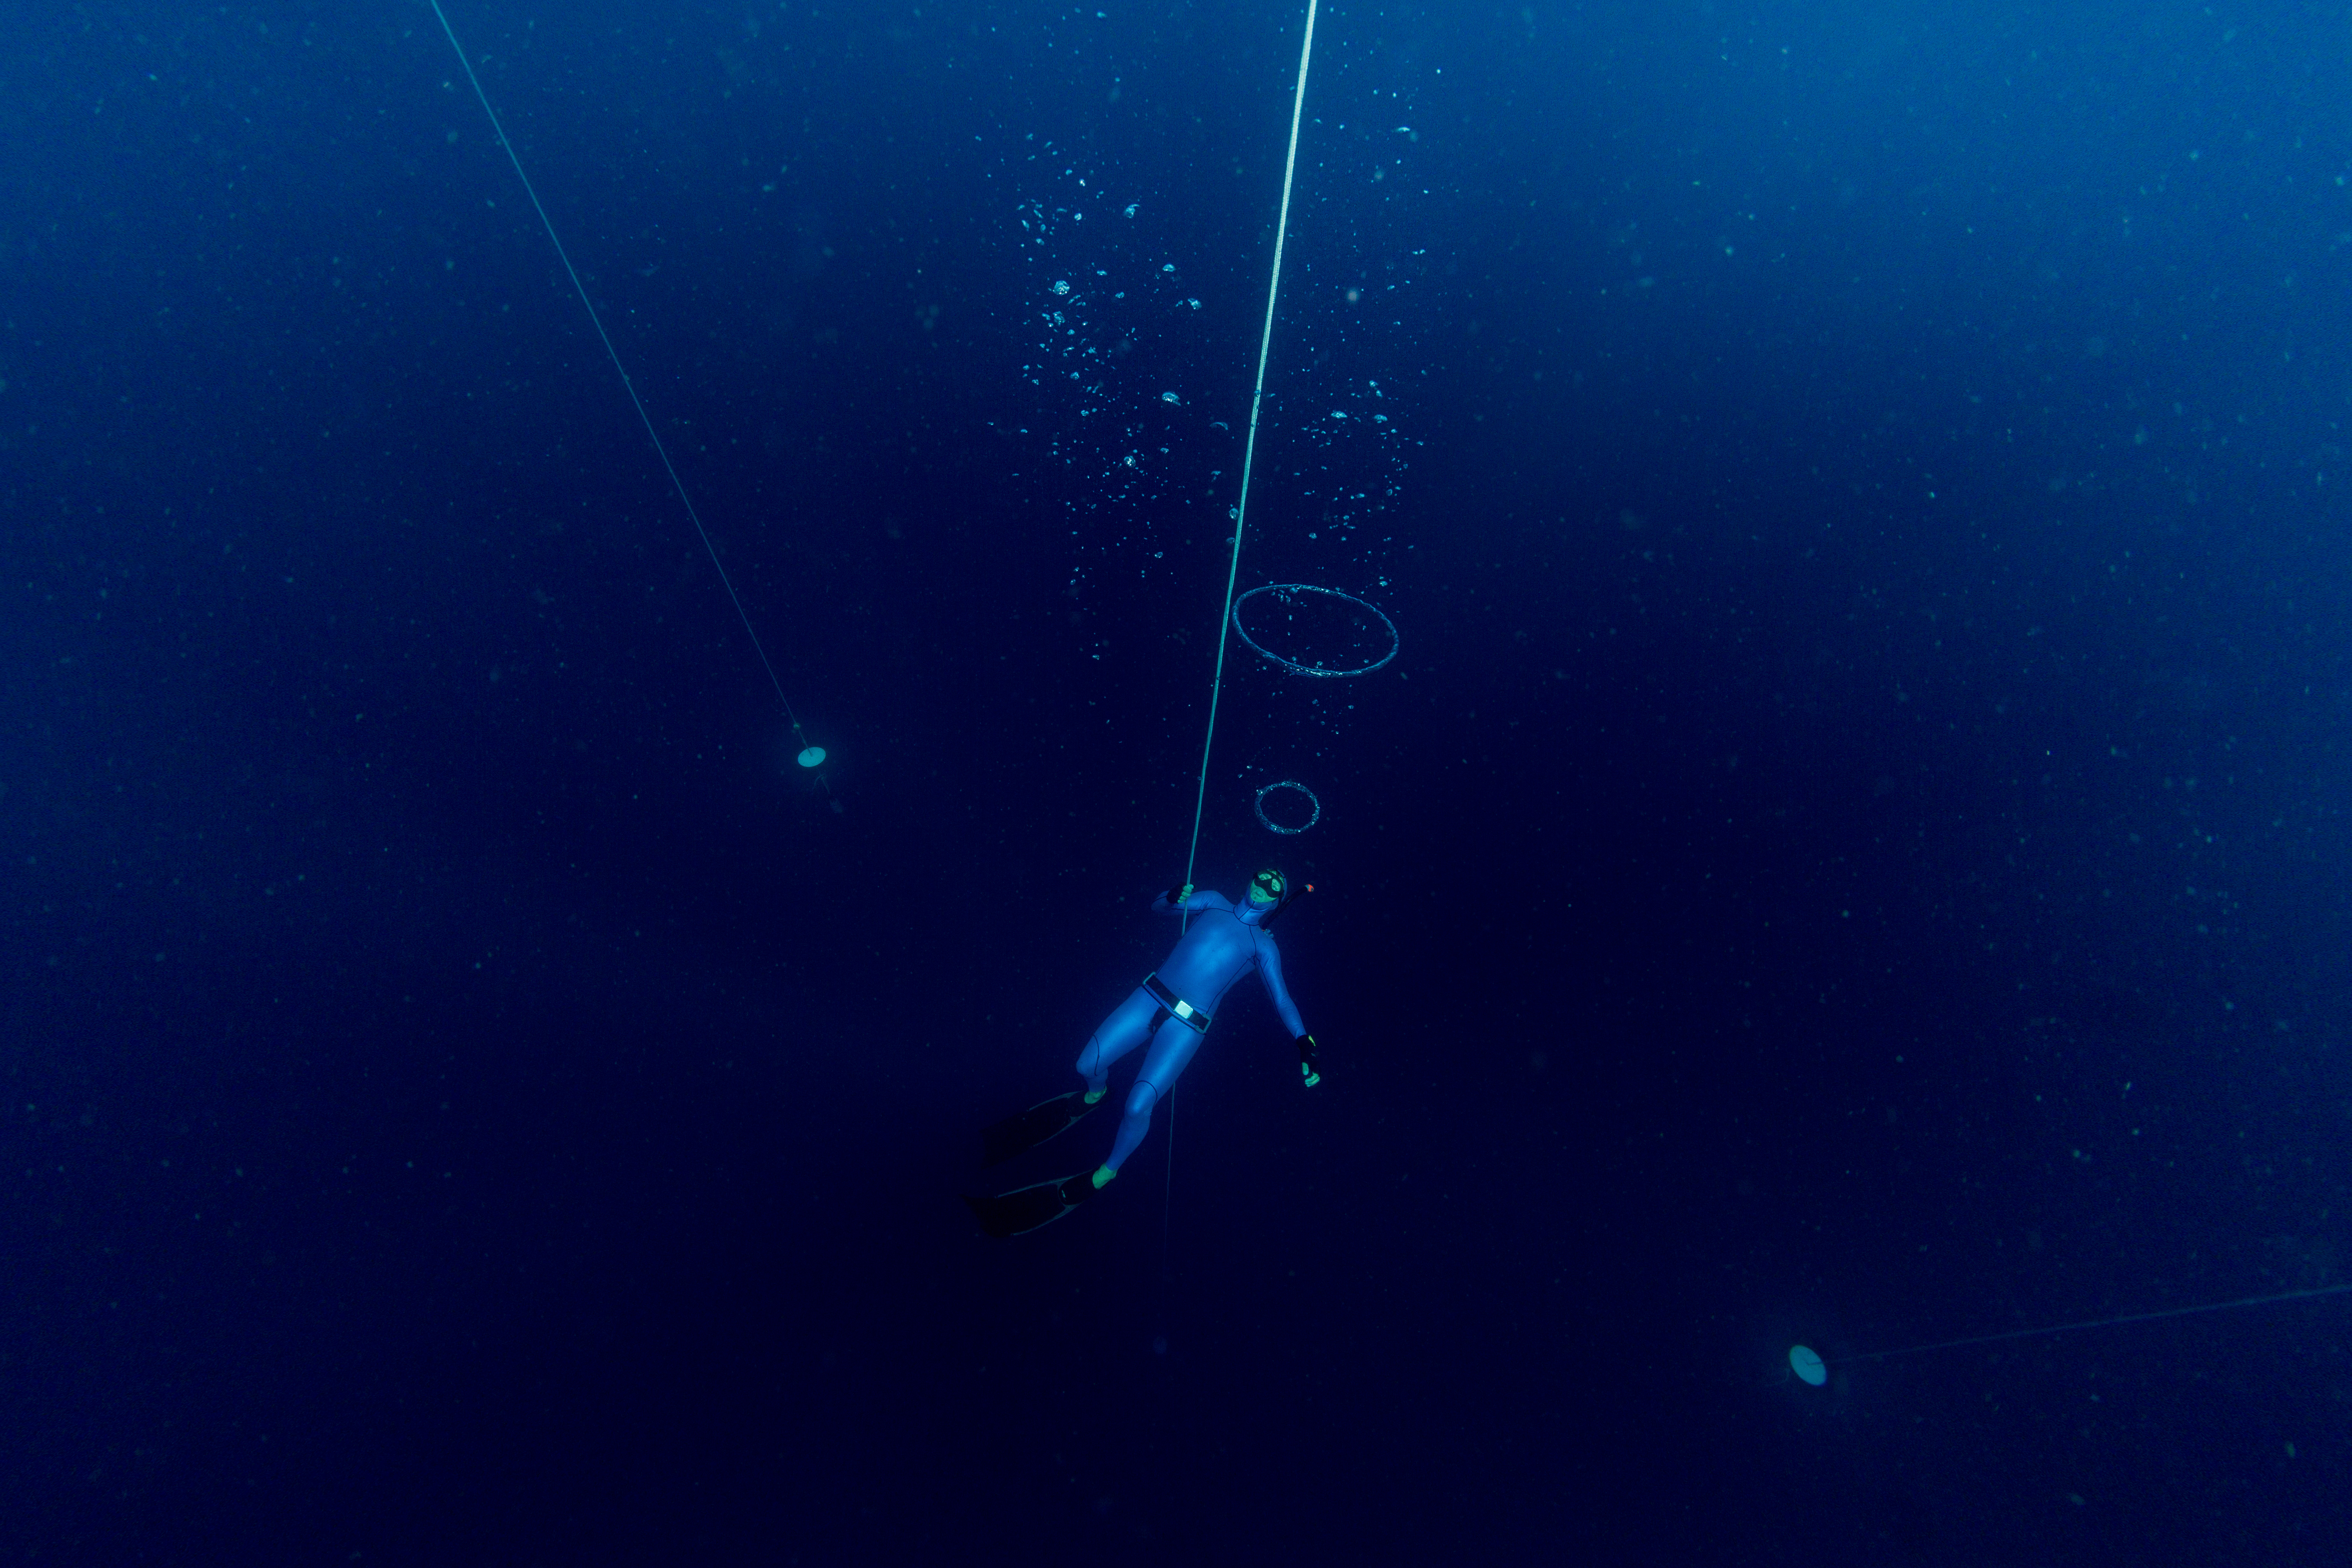 How Dangerous Is Freediving? – DeeperBlue com